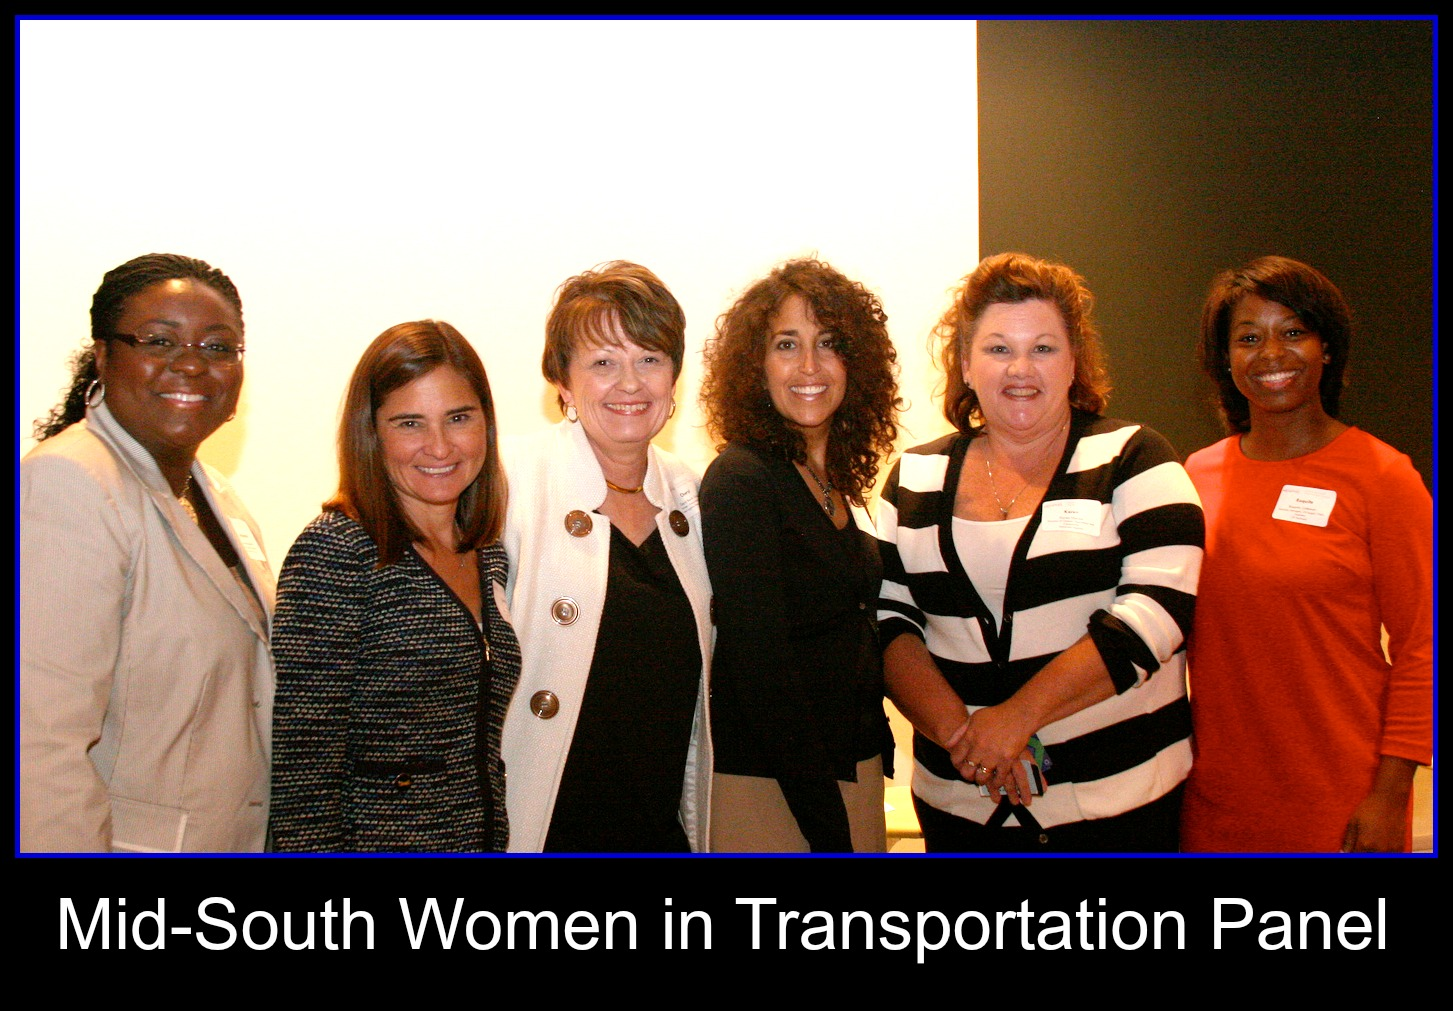 Mid-South Women in Transportation Panel